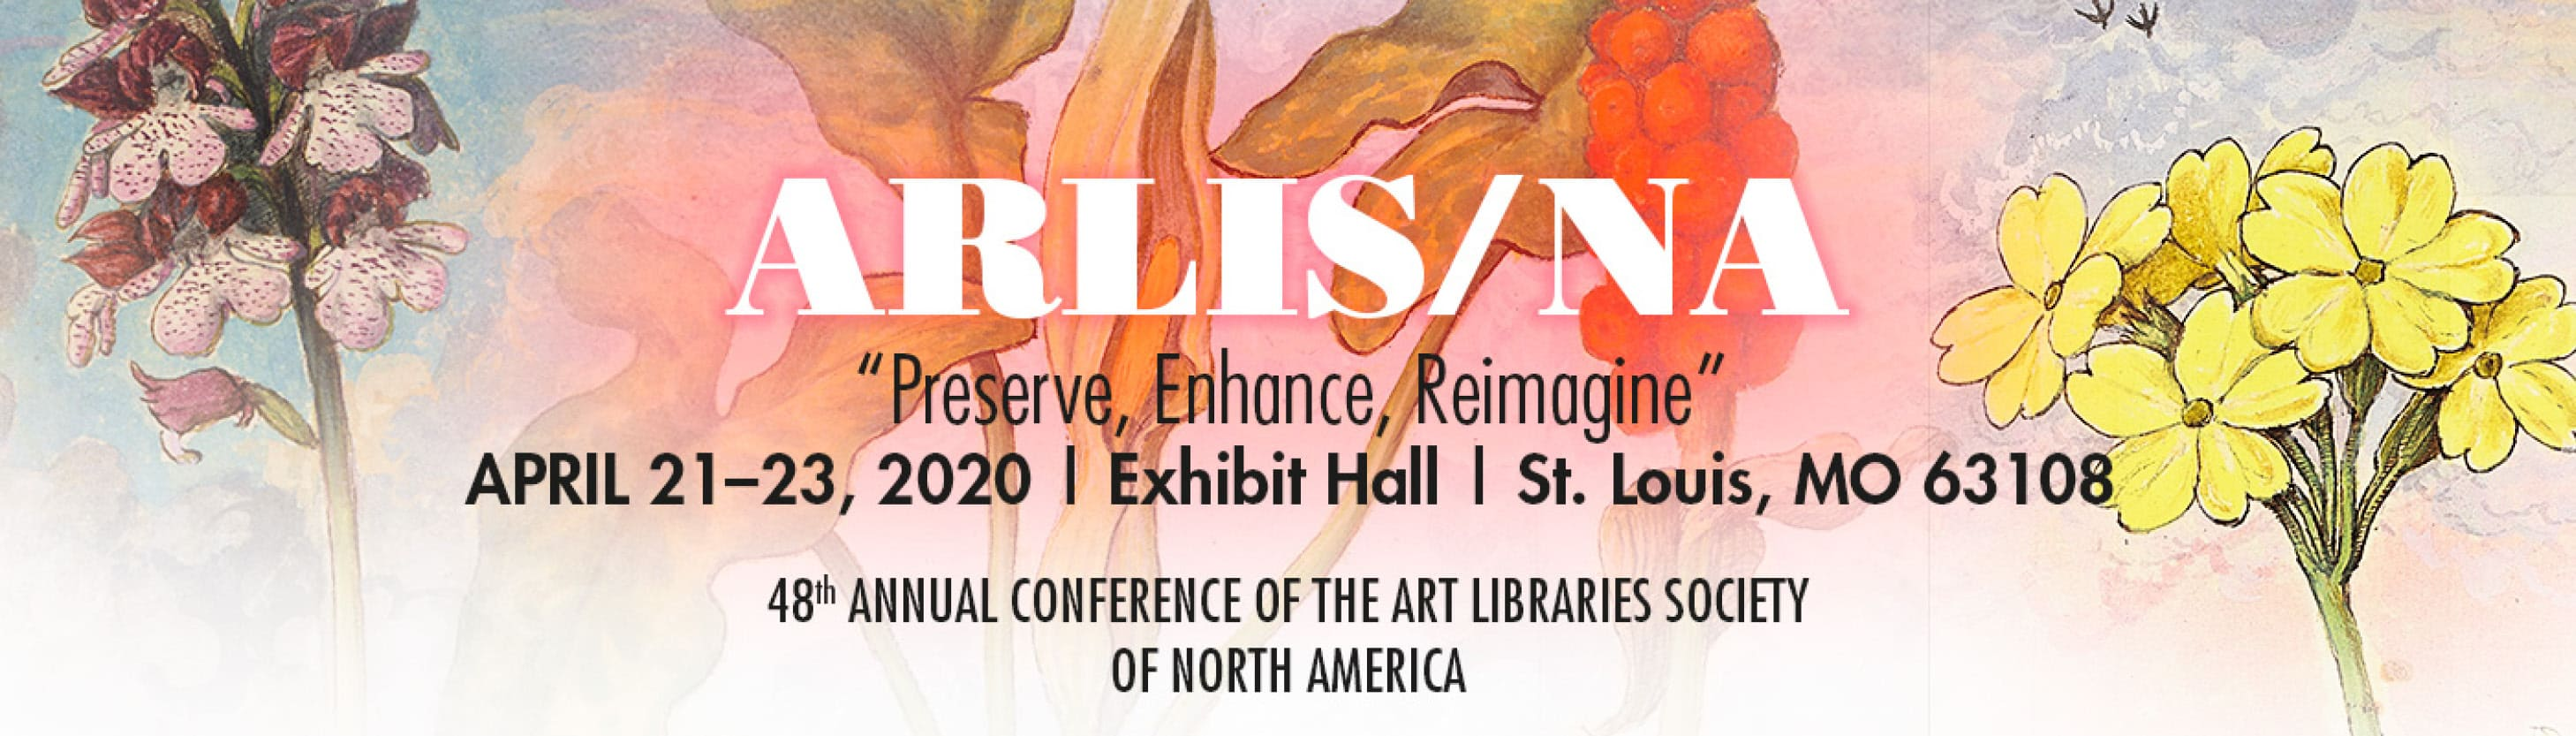 ARLIS/NA, 48th Annual Conference of the Art Libraries Society of North America